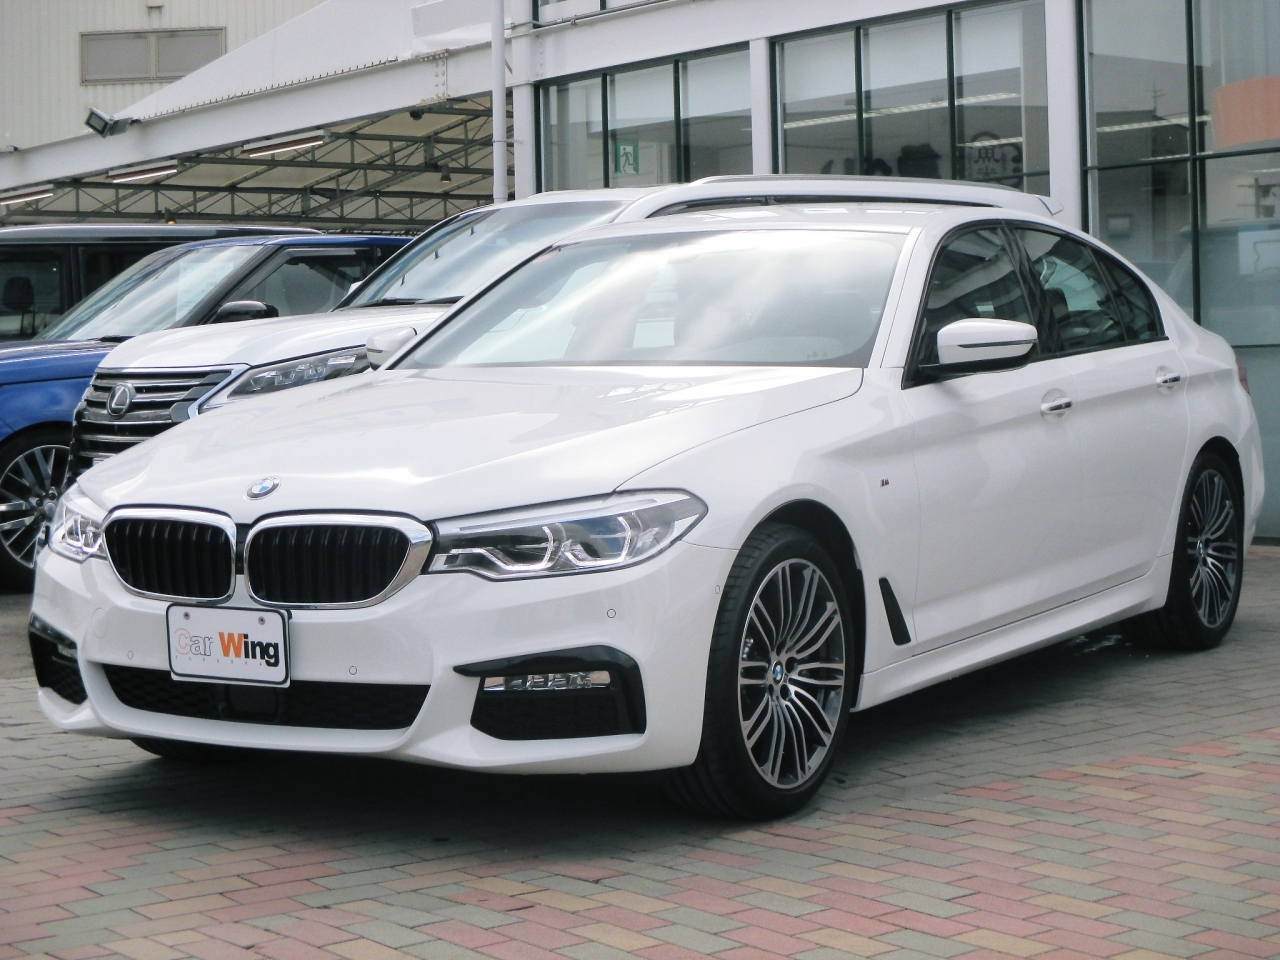 Buy used BMW 5 SERIES at Japanese auctions